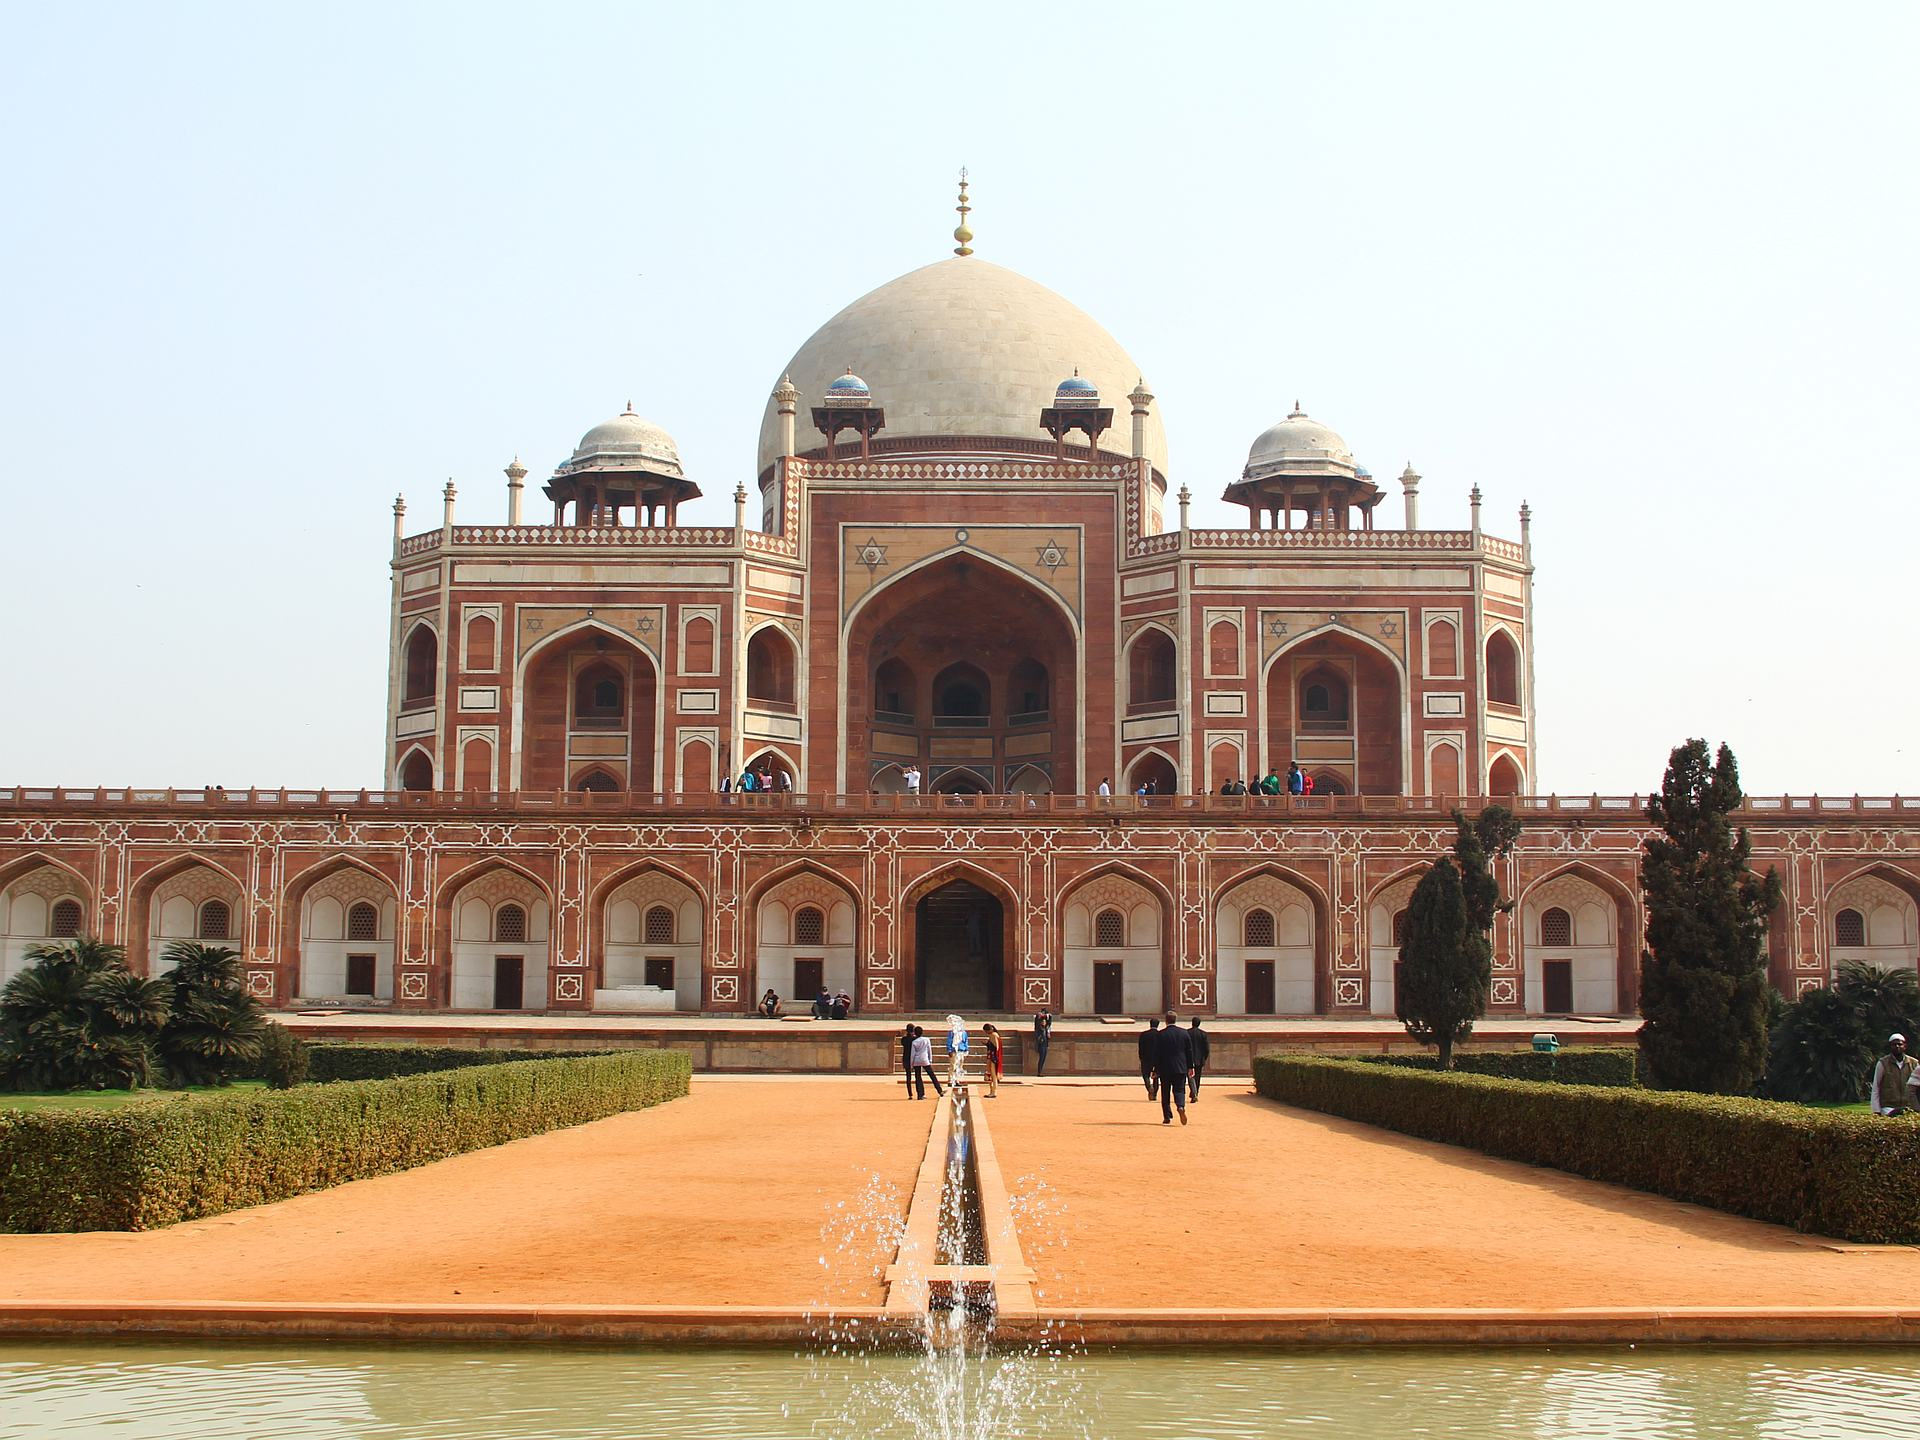 The Tomb of Humayum (Humayum & #039; s Tomb) served as inspiration for the construction of the Taj Mahal.